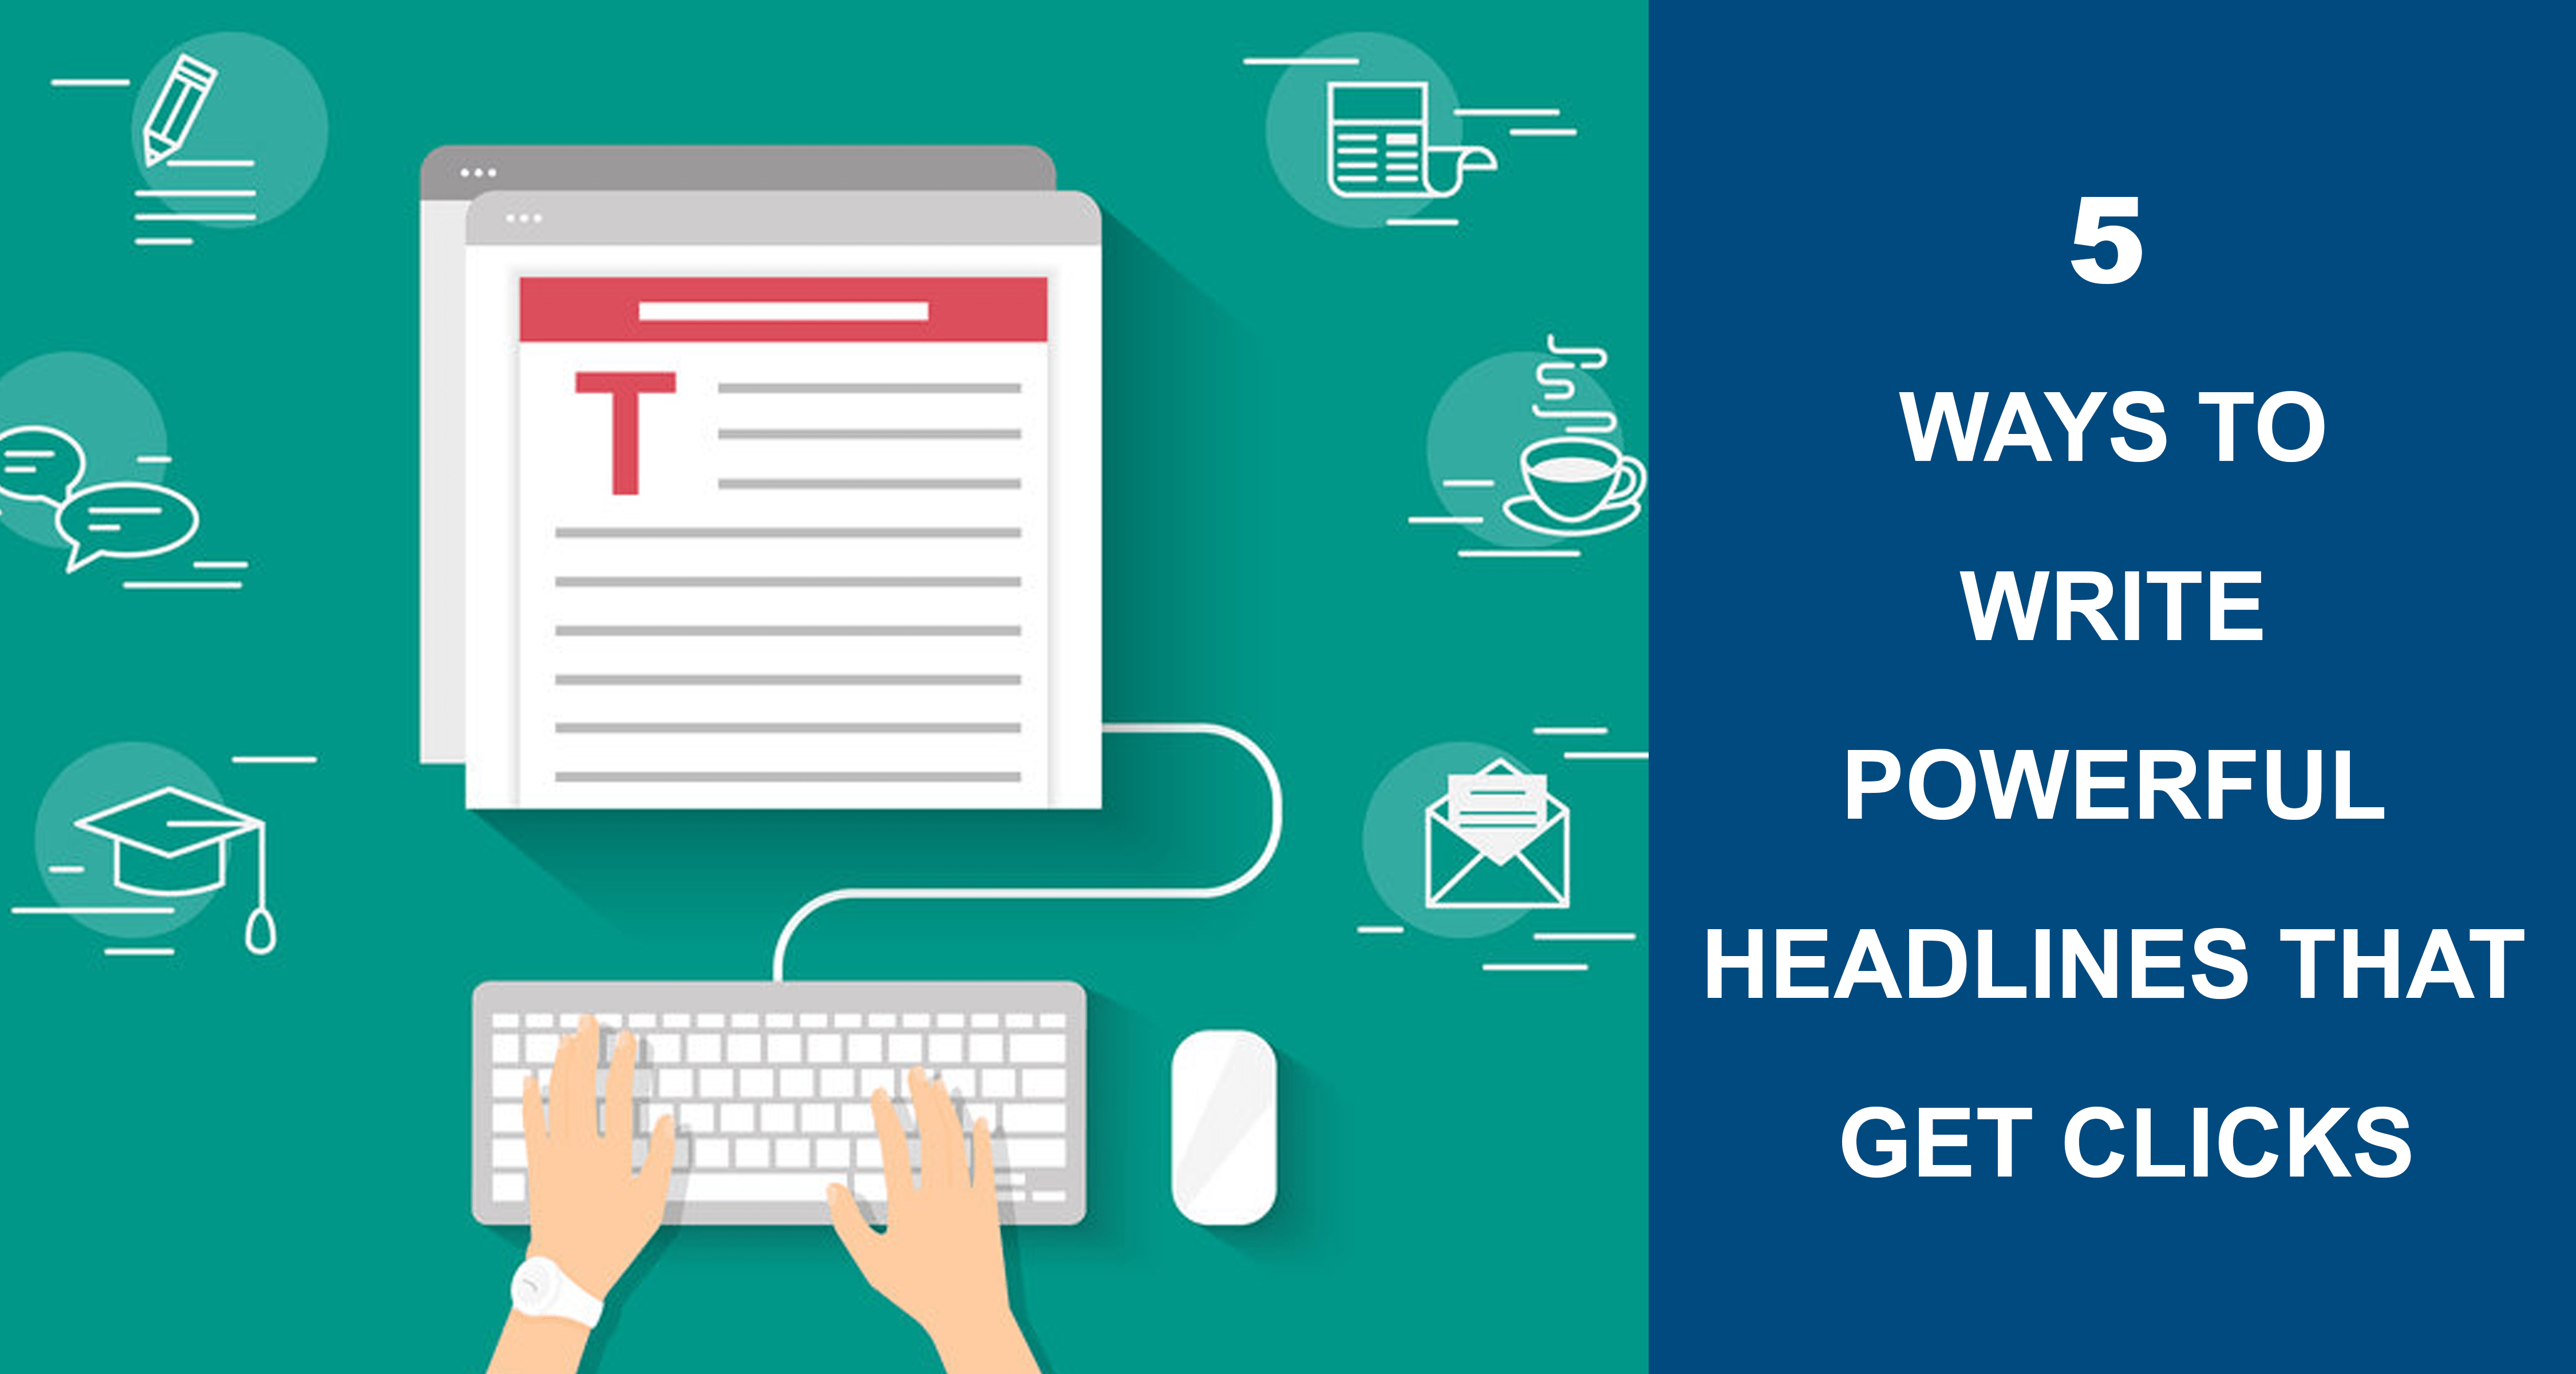 5 Ways To Write Powerful Headlines That Get Clicks